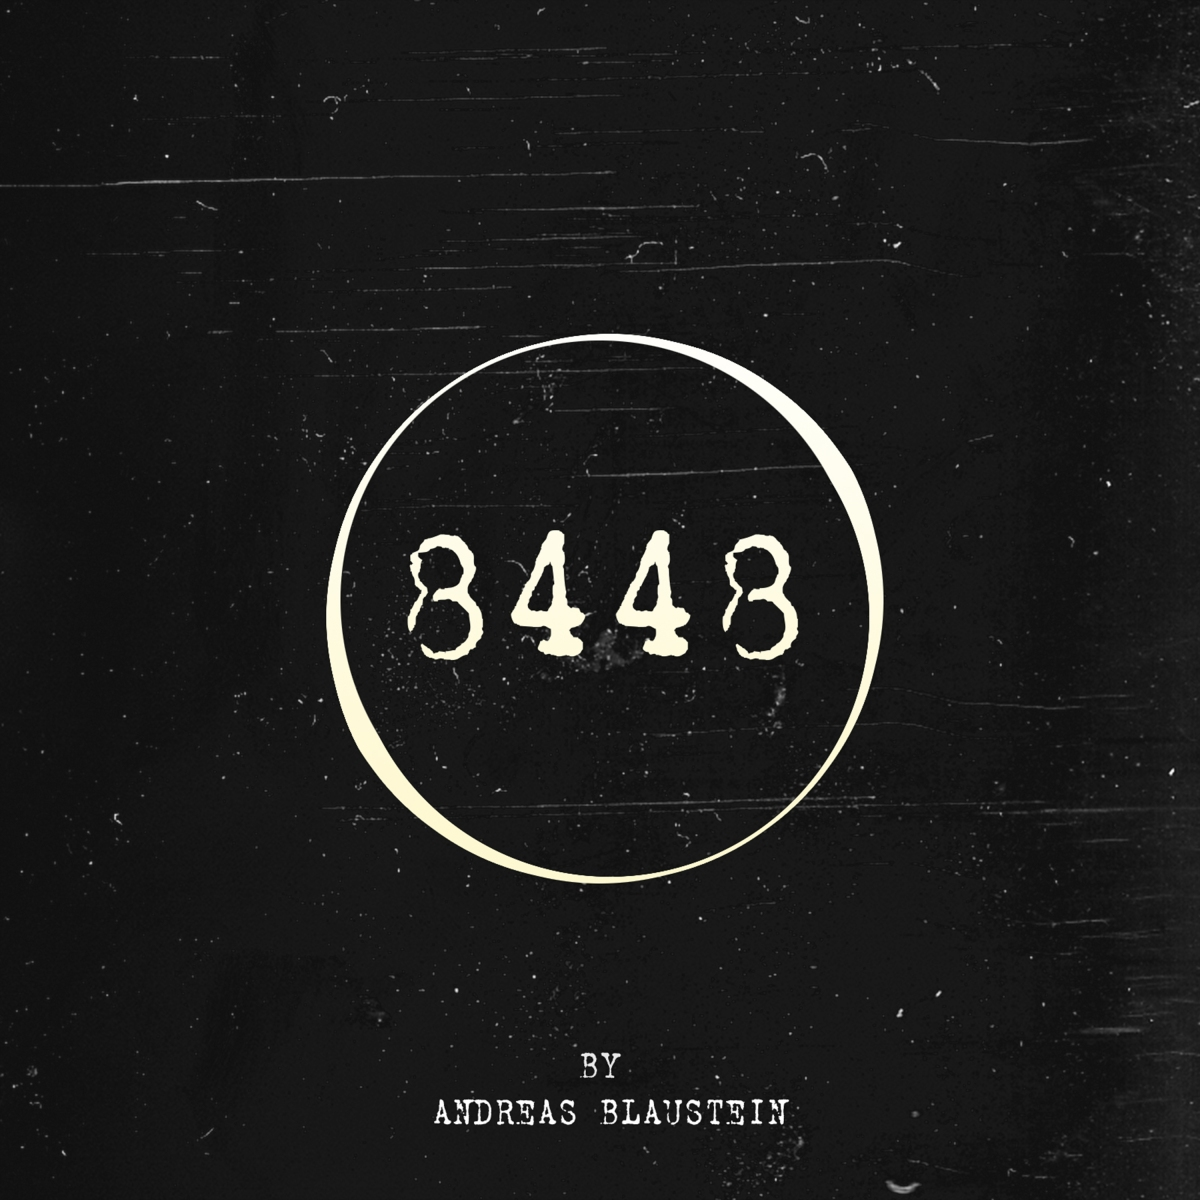 8448 by Andreas Blaustein